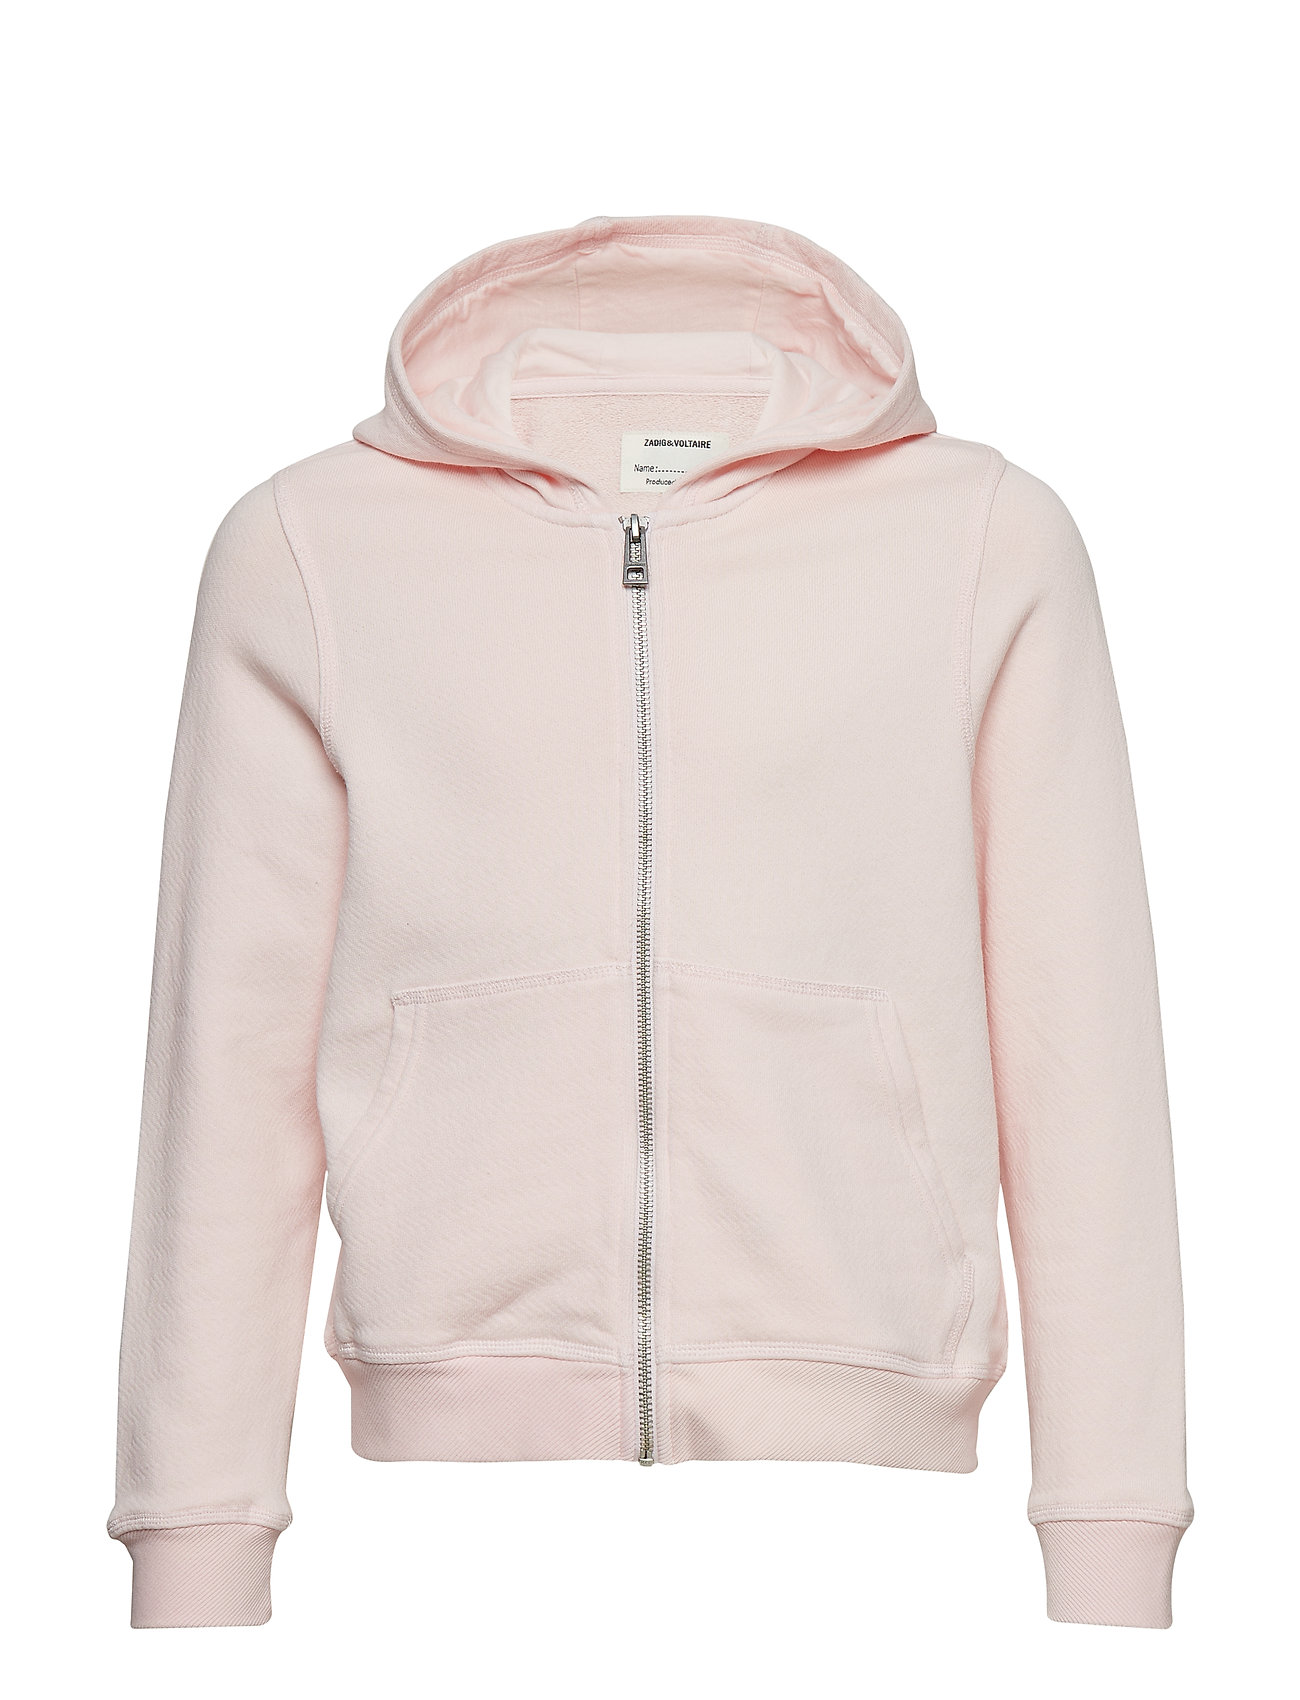 Zadig & Voltaire Kids HOODED CARDIGAN - PINK  PALE